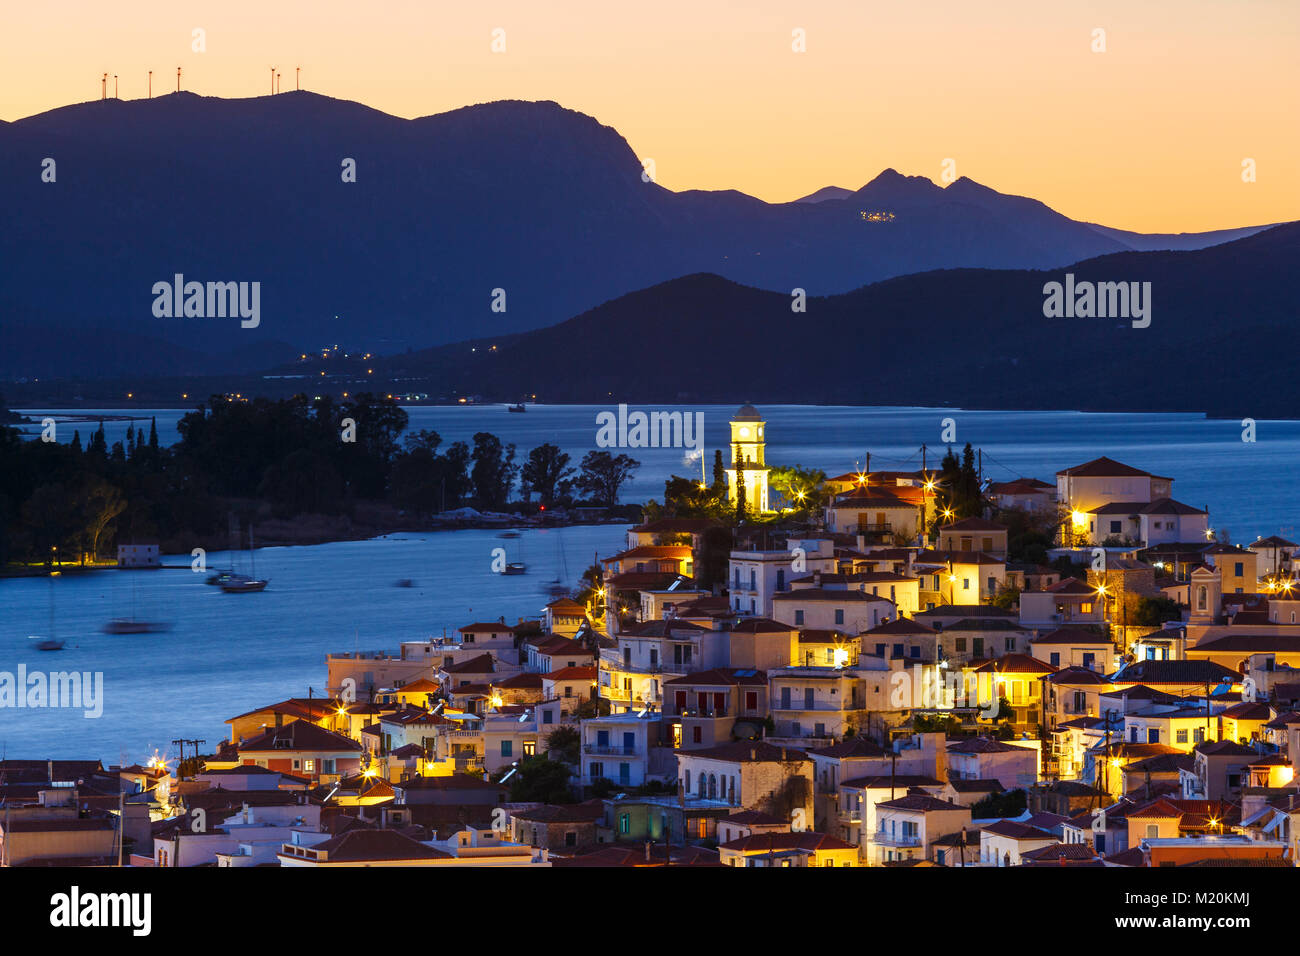 View of Poros island and mountains of Peloponnese peninsula in Greece. - Stock Image